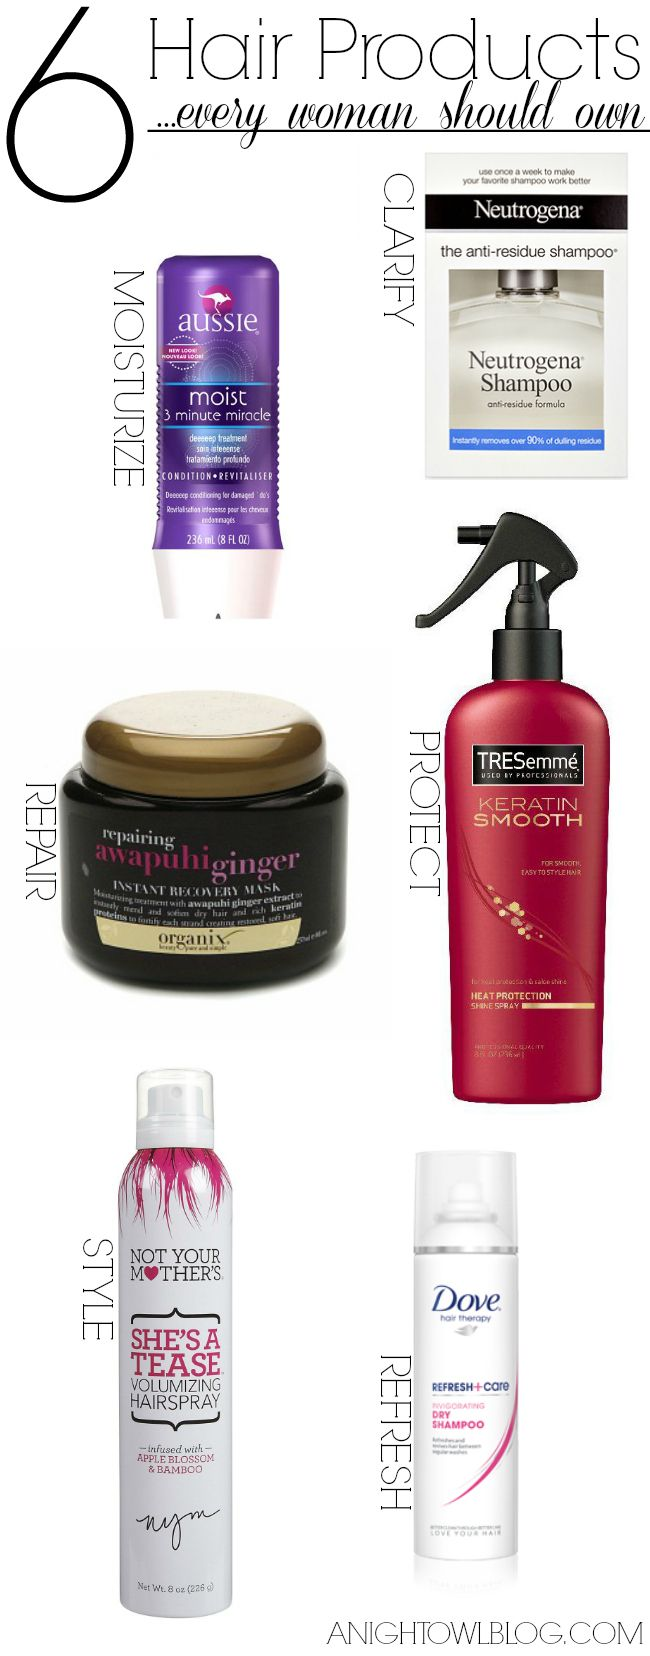 Check out these must have hair products that every woman should own and use!